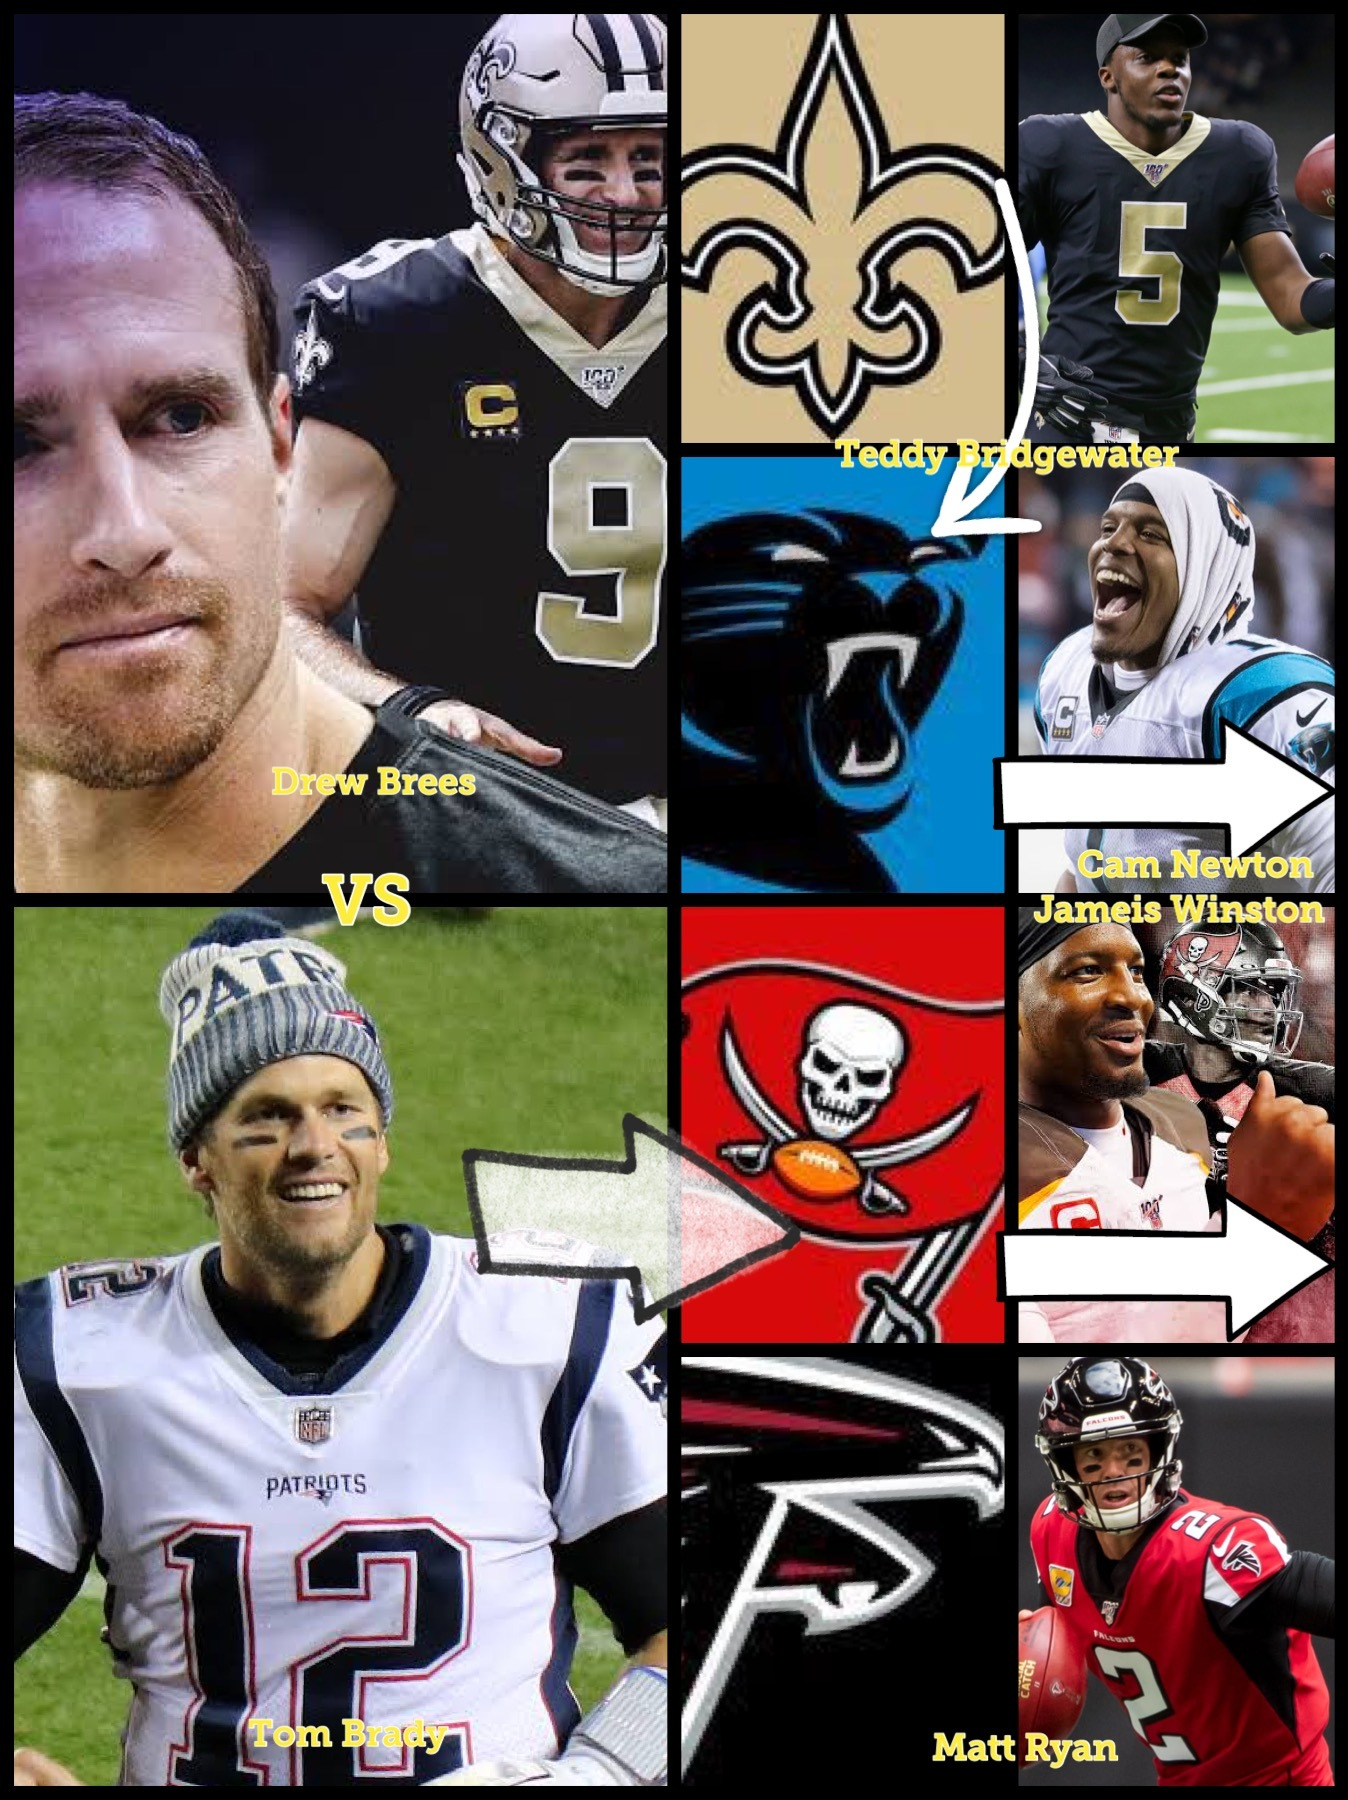 NFL exiting NFC South division 2020 QB